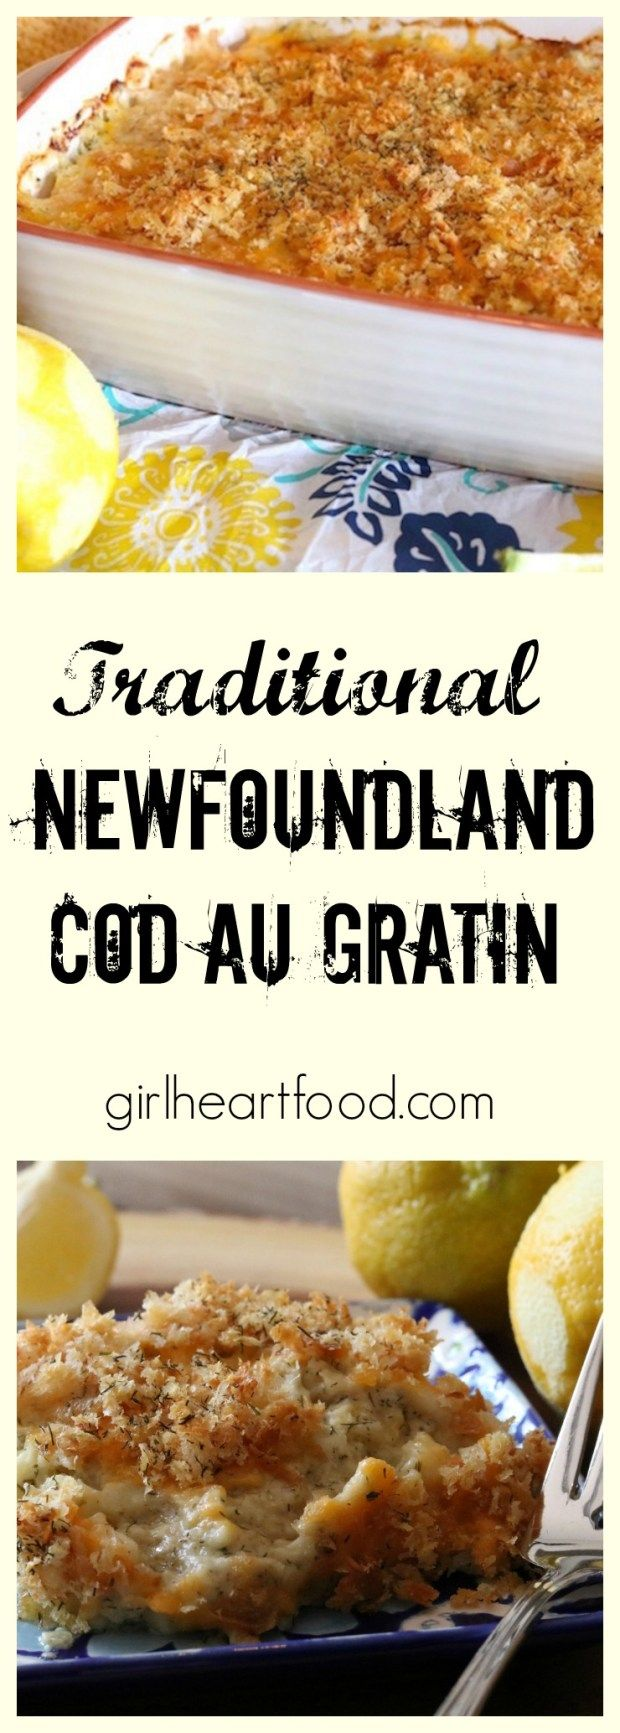 Traditional Newfoundland Cod au Gratin. #seafood #Canadian_recipes